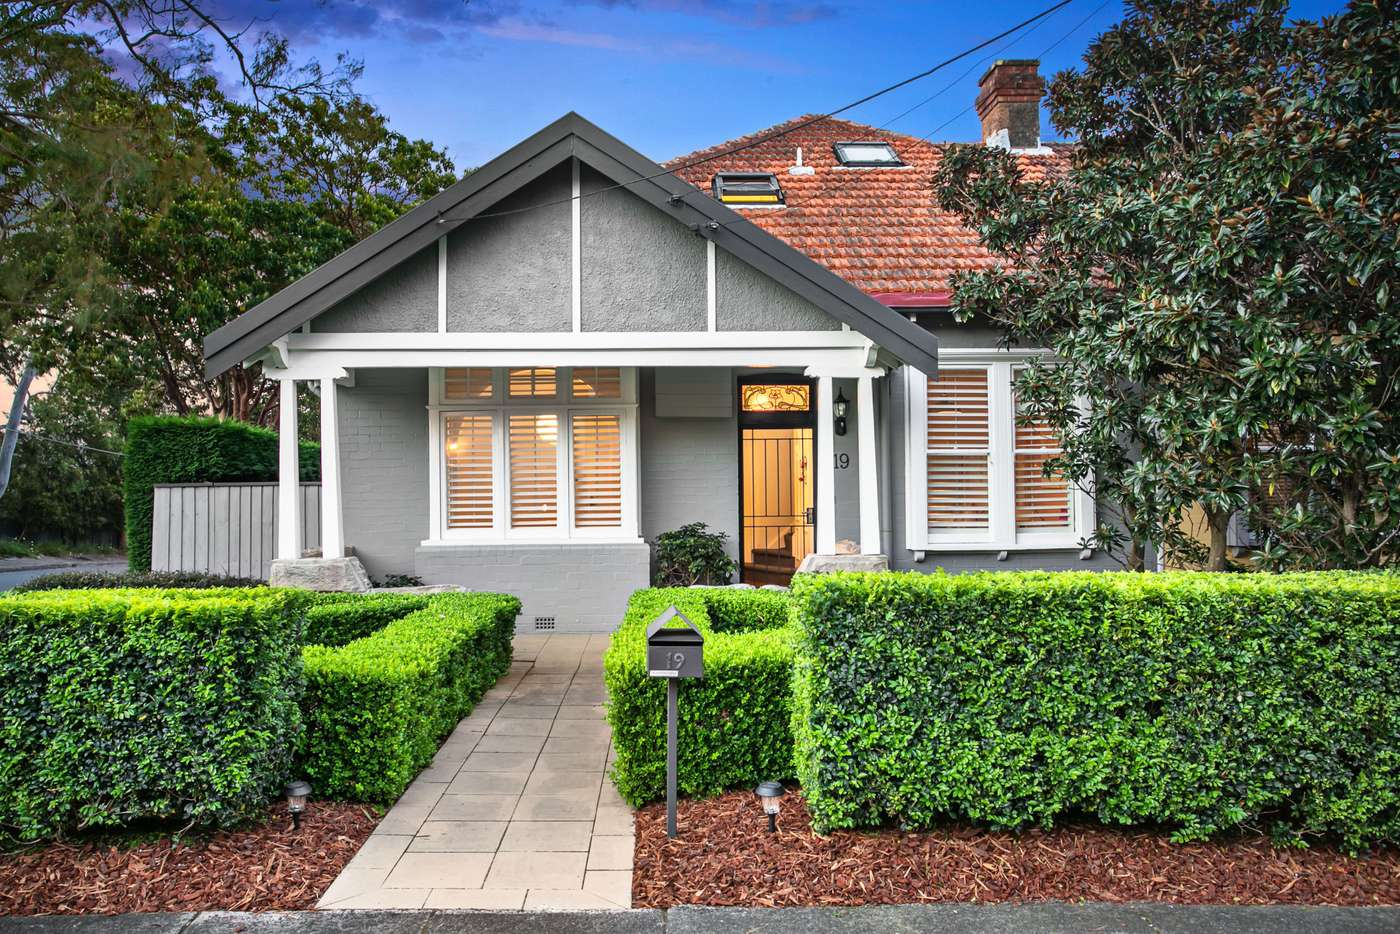 Main view of Homely house listing, 19 Earl Street, Mosman NSW 2088